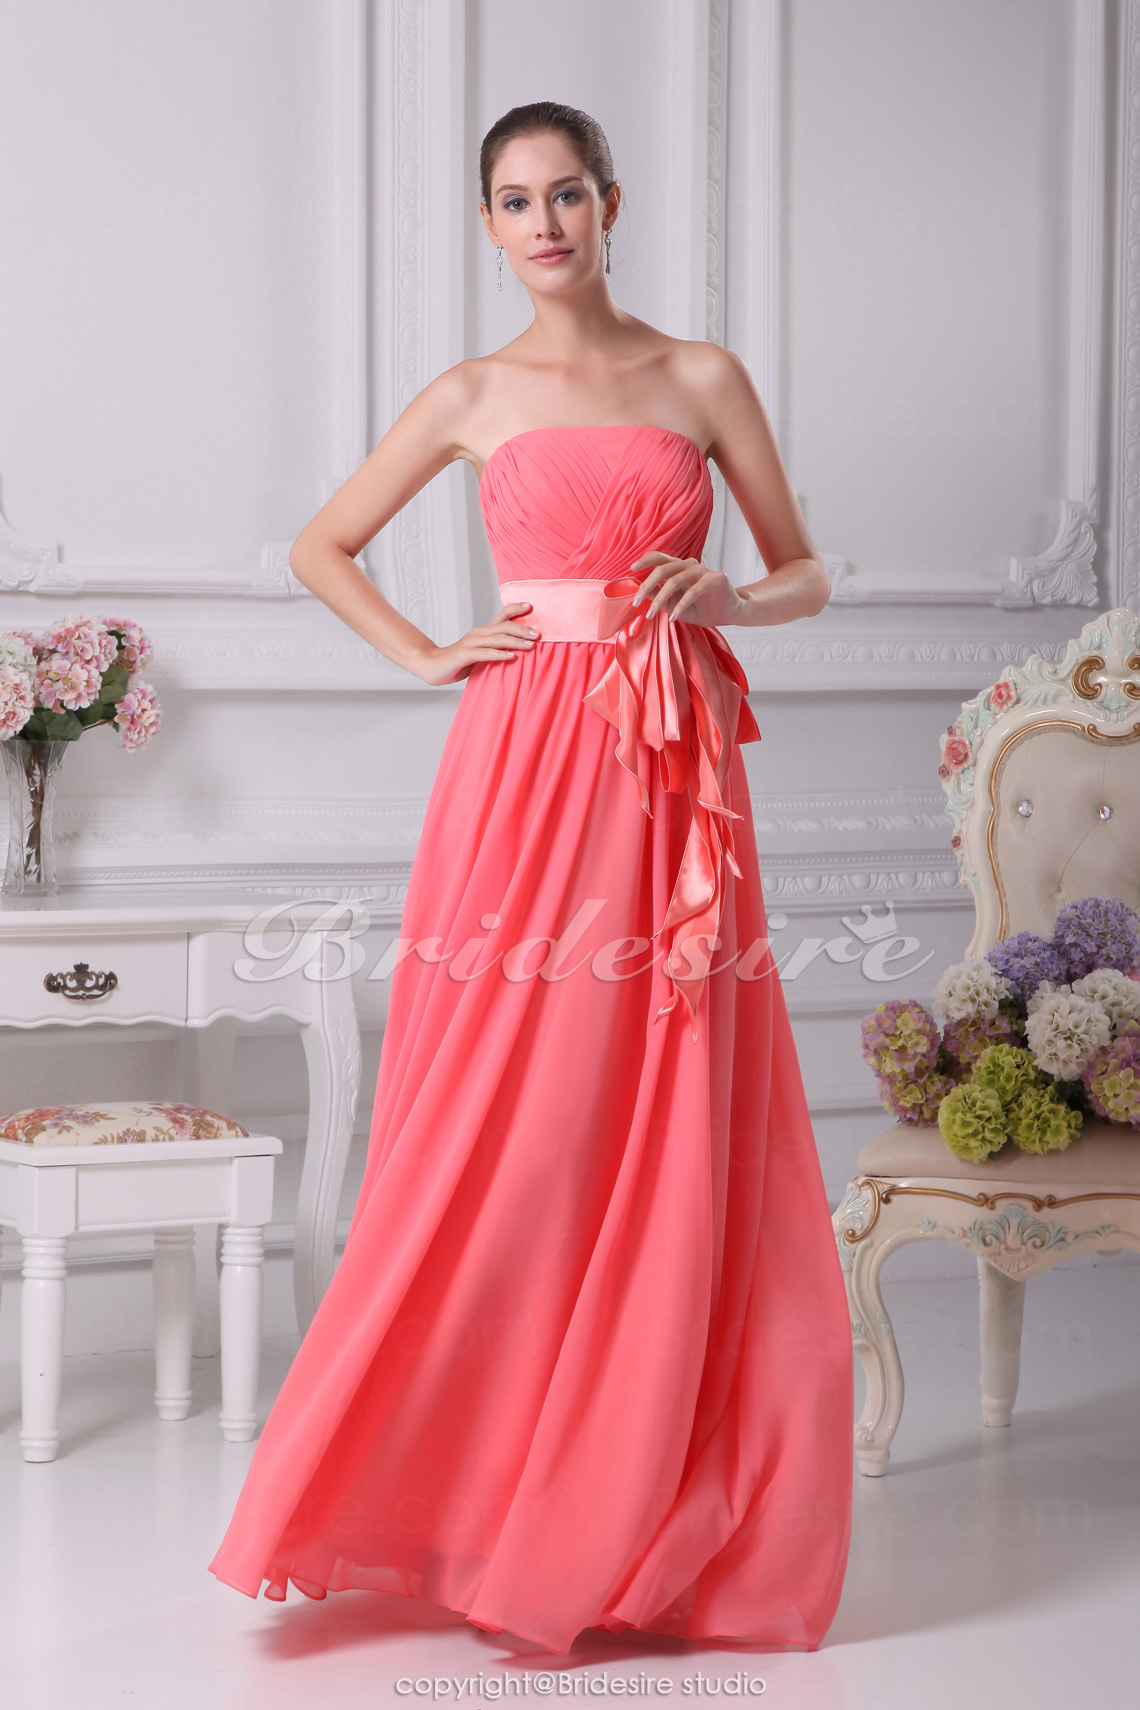 Sheath/Column Strapless Floor-length Sleeveless Chiffon Stretch Satin Bridesmaid Dress